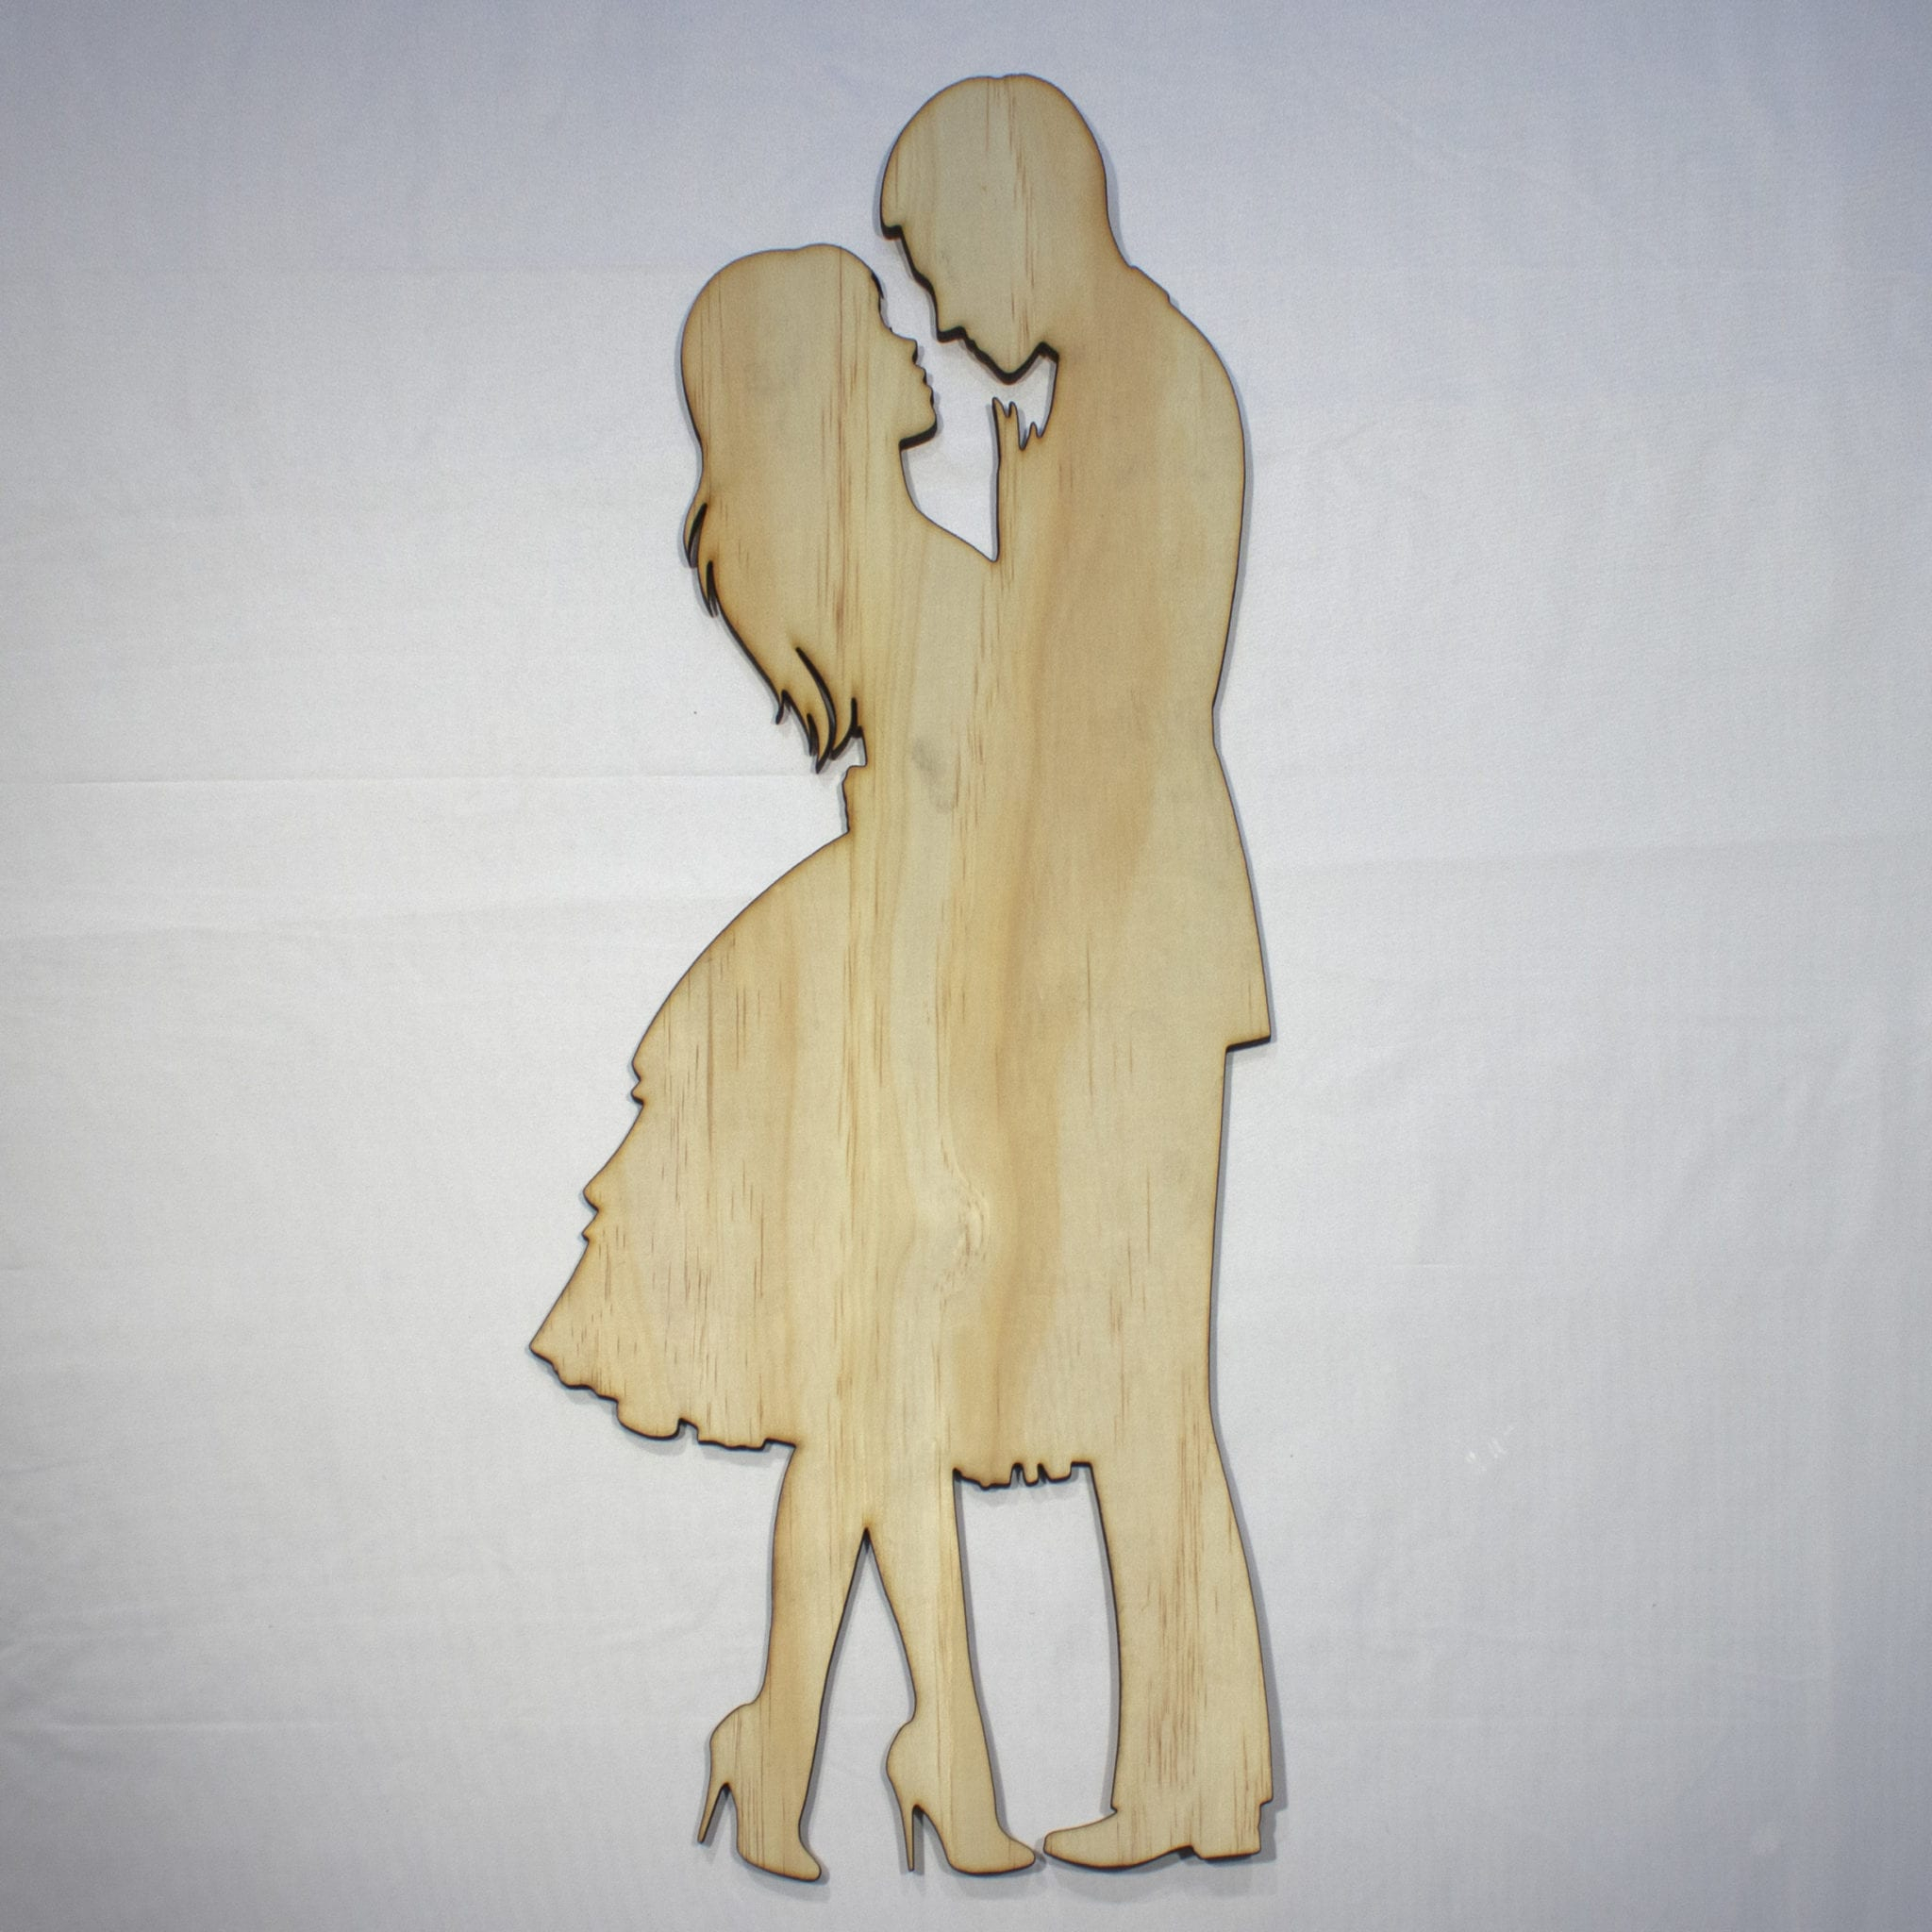 2020 Dancing Couple In Love 22In Tall Laser Cut Wood Silhouette Wall Art Within Let Whatever You Do Today Be Enough Wood Wall Decor (Gallery 14 of 20)